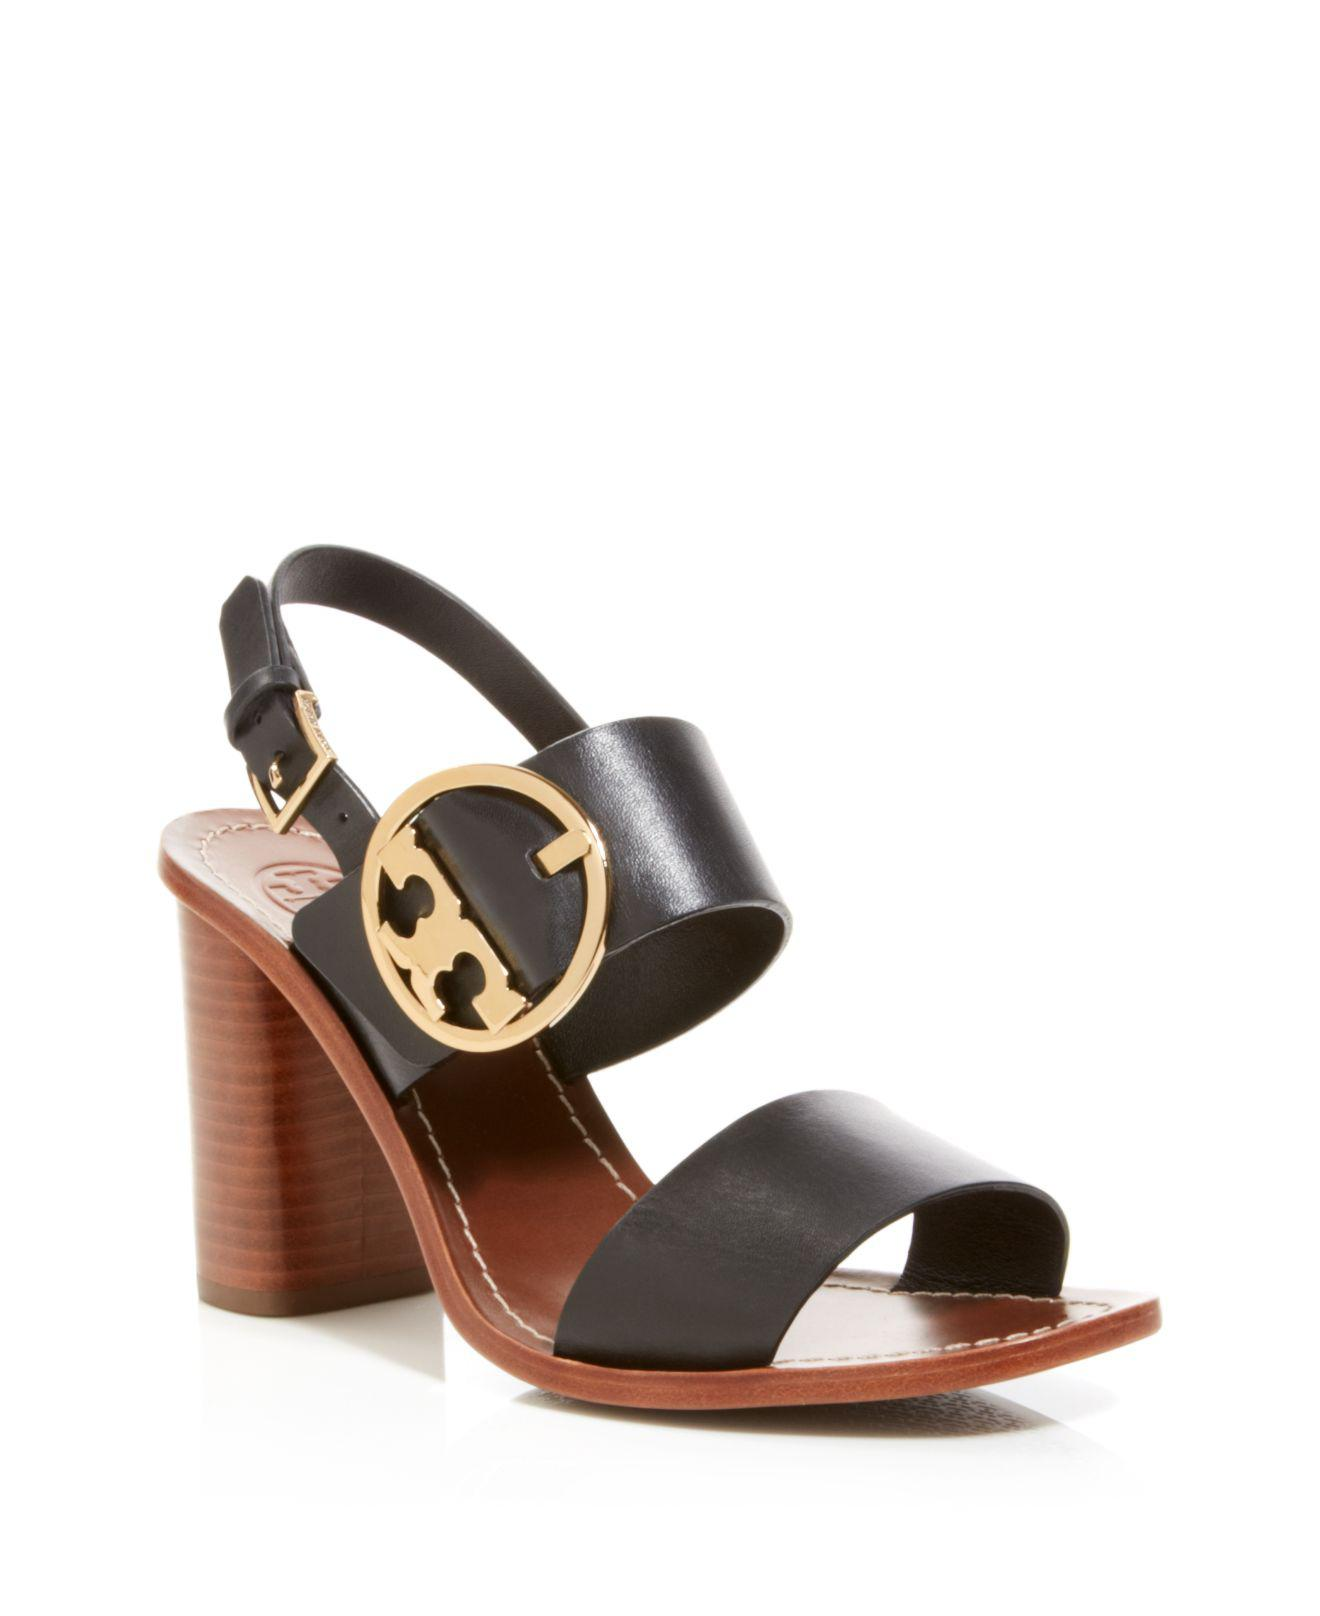 ddce41c794c7 Lyst - Tory Burch Ankle Strap Sandals - Thames Buckle City in Black